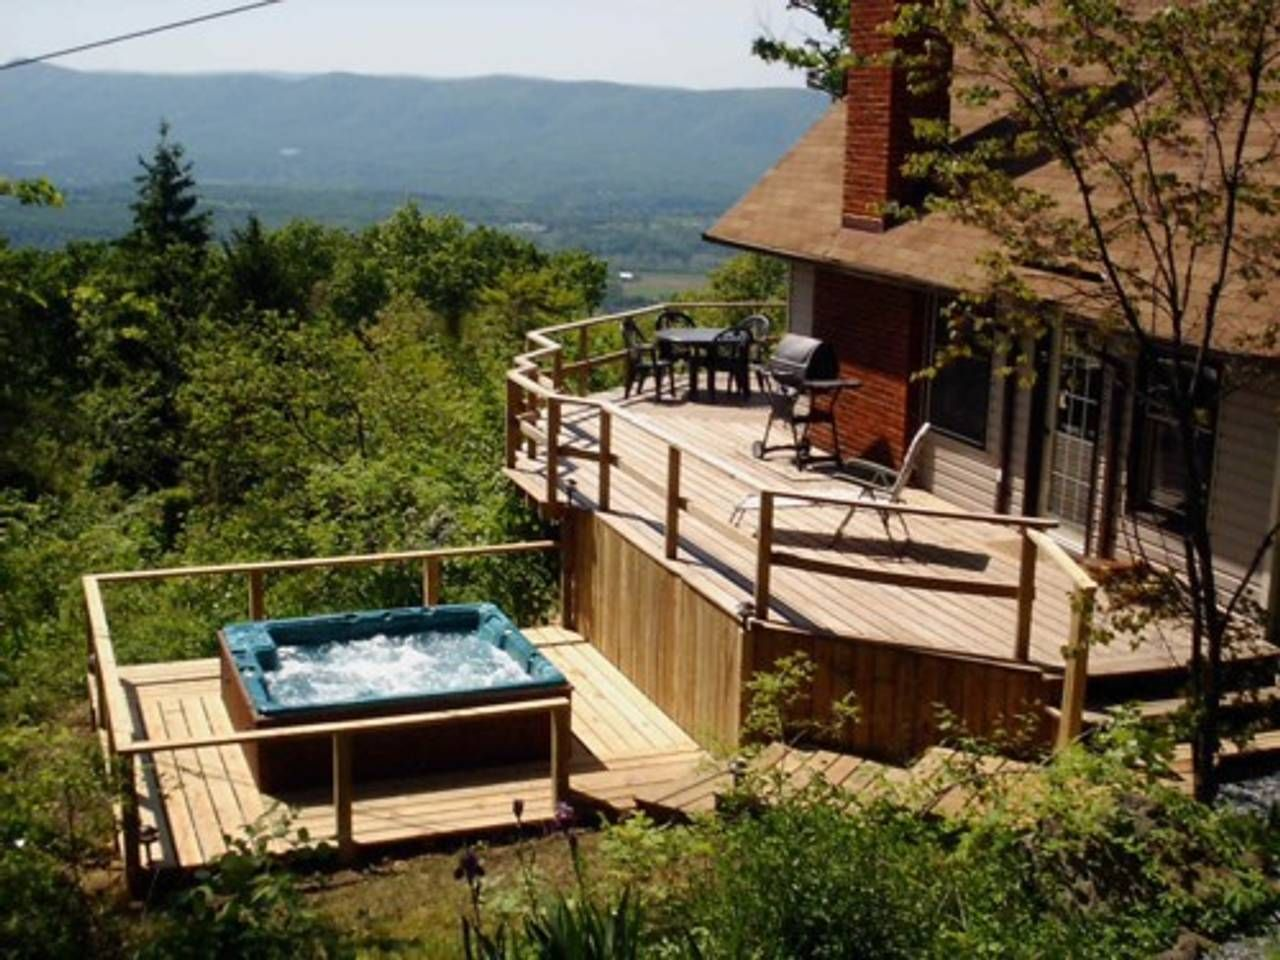 Mountain Clouds Relaxing Escape Views Hot Tub Cabins